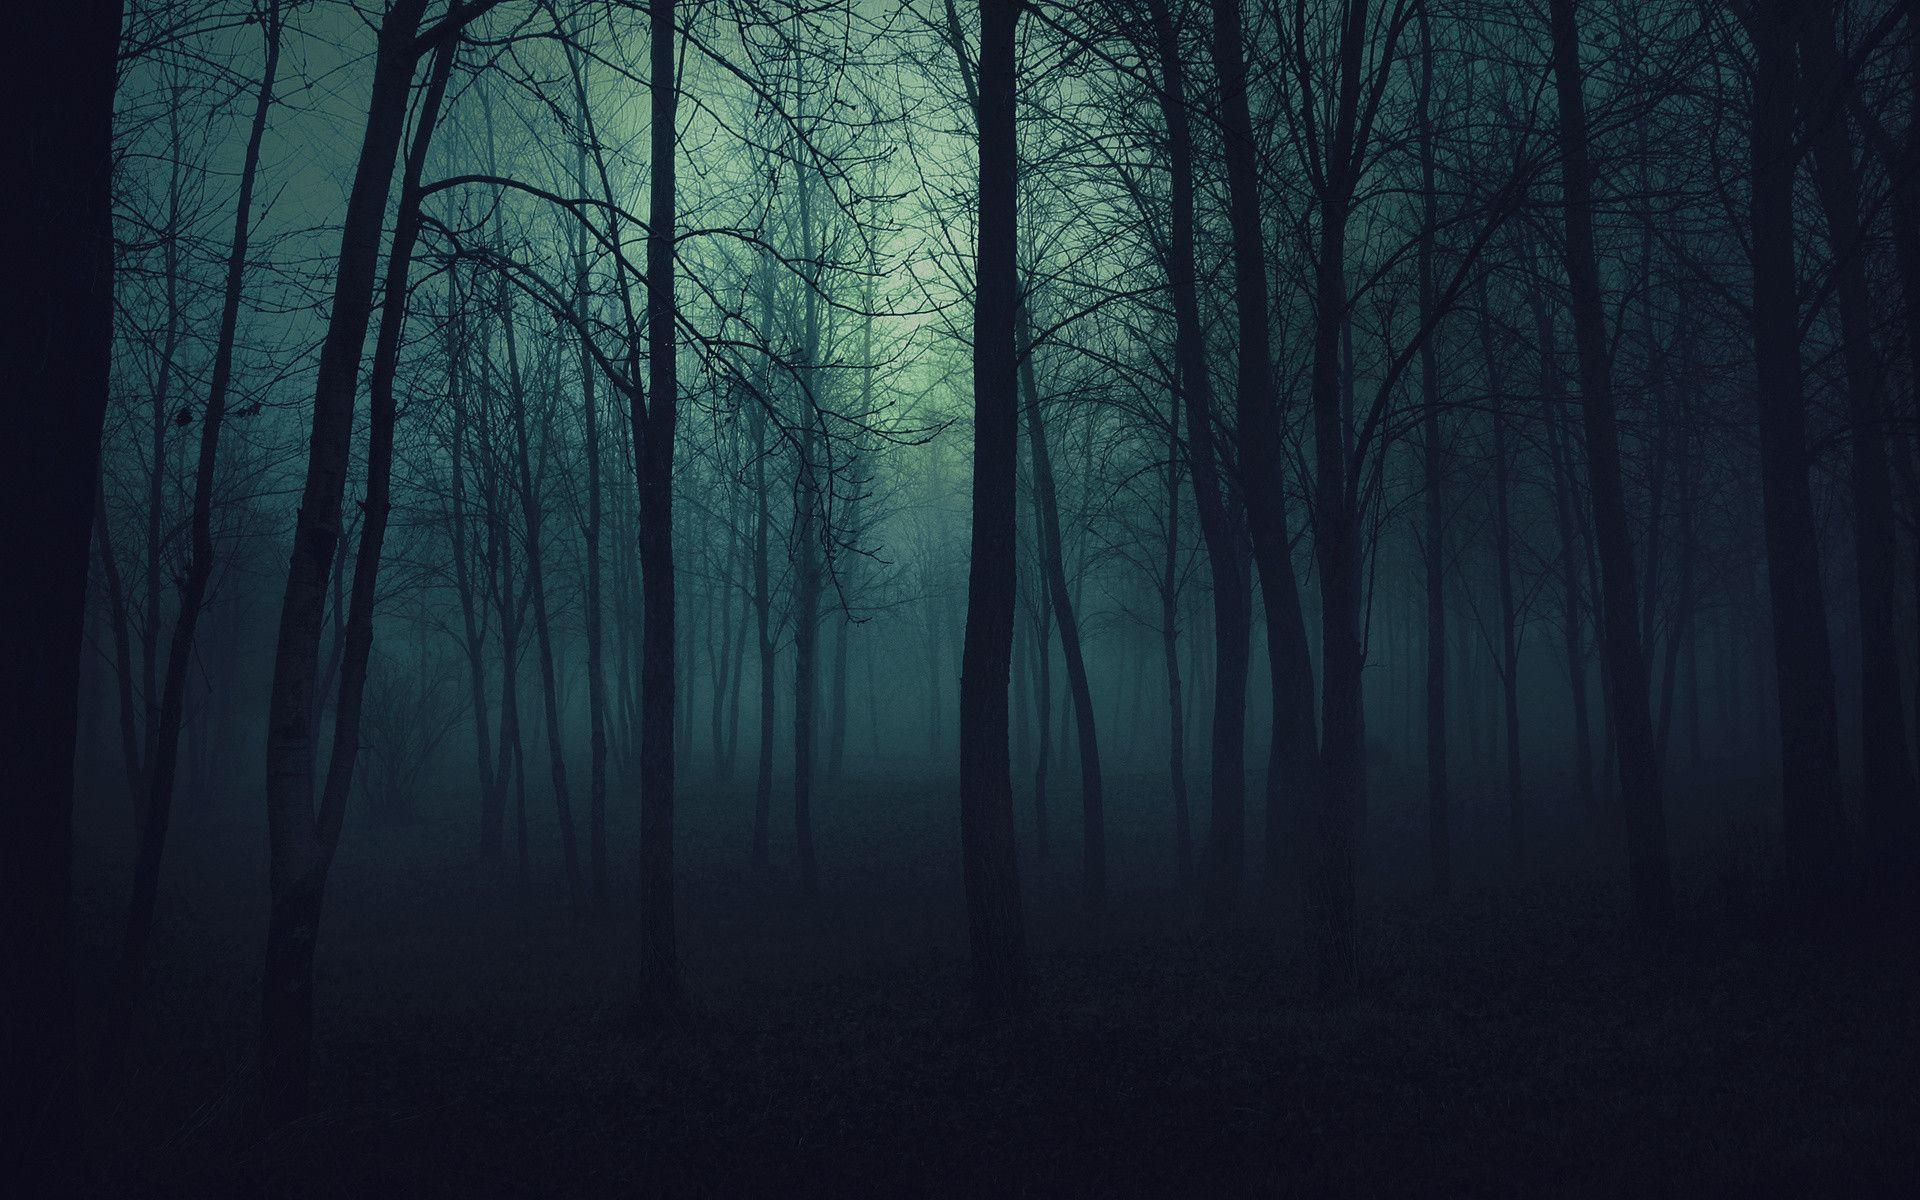 Dark Forest Backgrounds Wallpaper Cave Dark forest background vectors and psd free download. dark forest backgrounds wallpaper cave